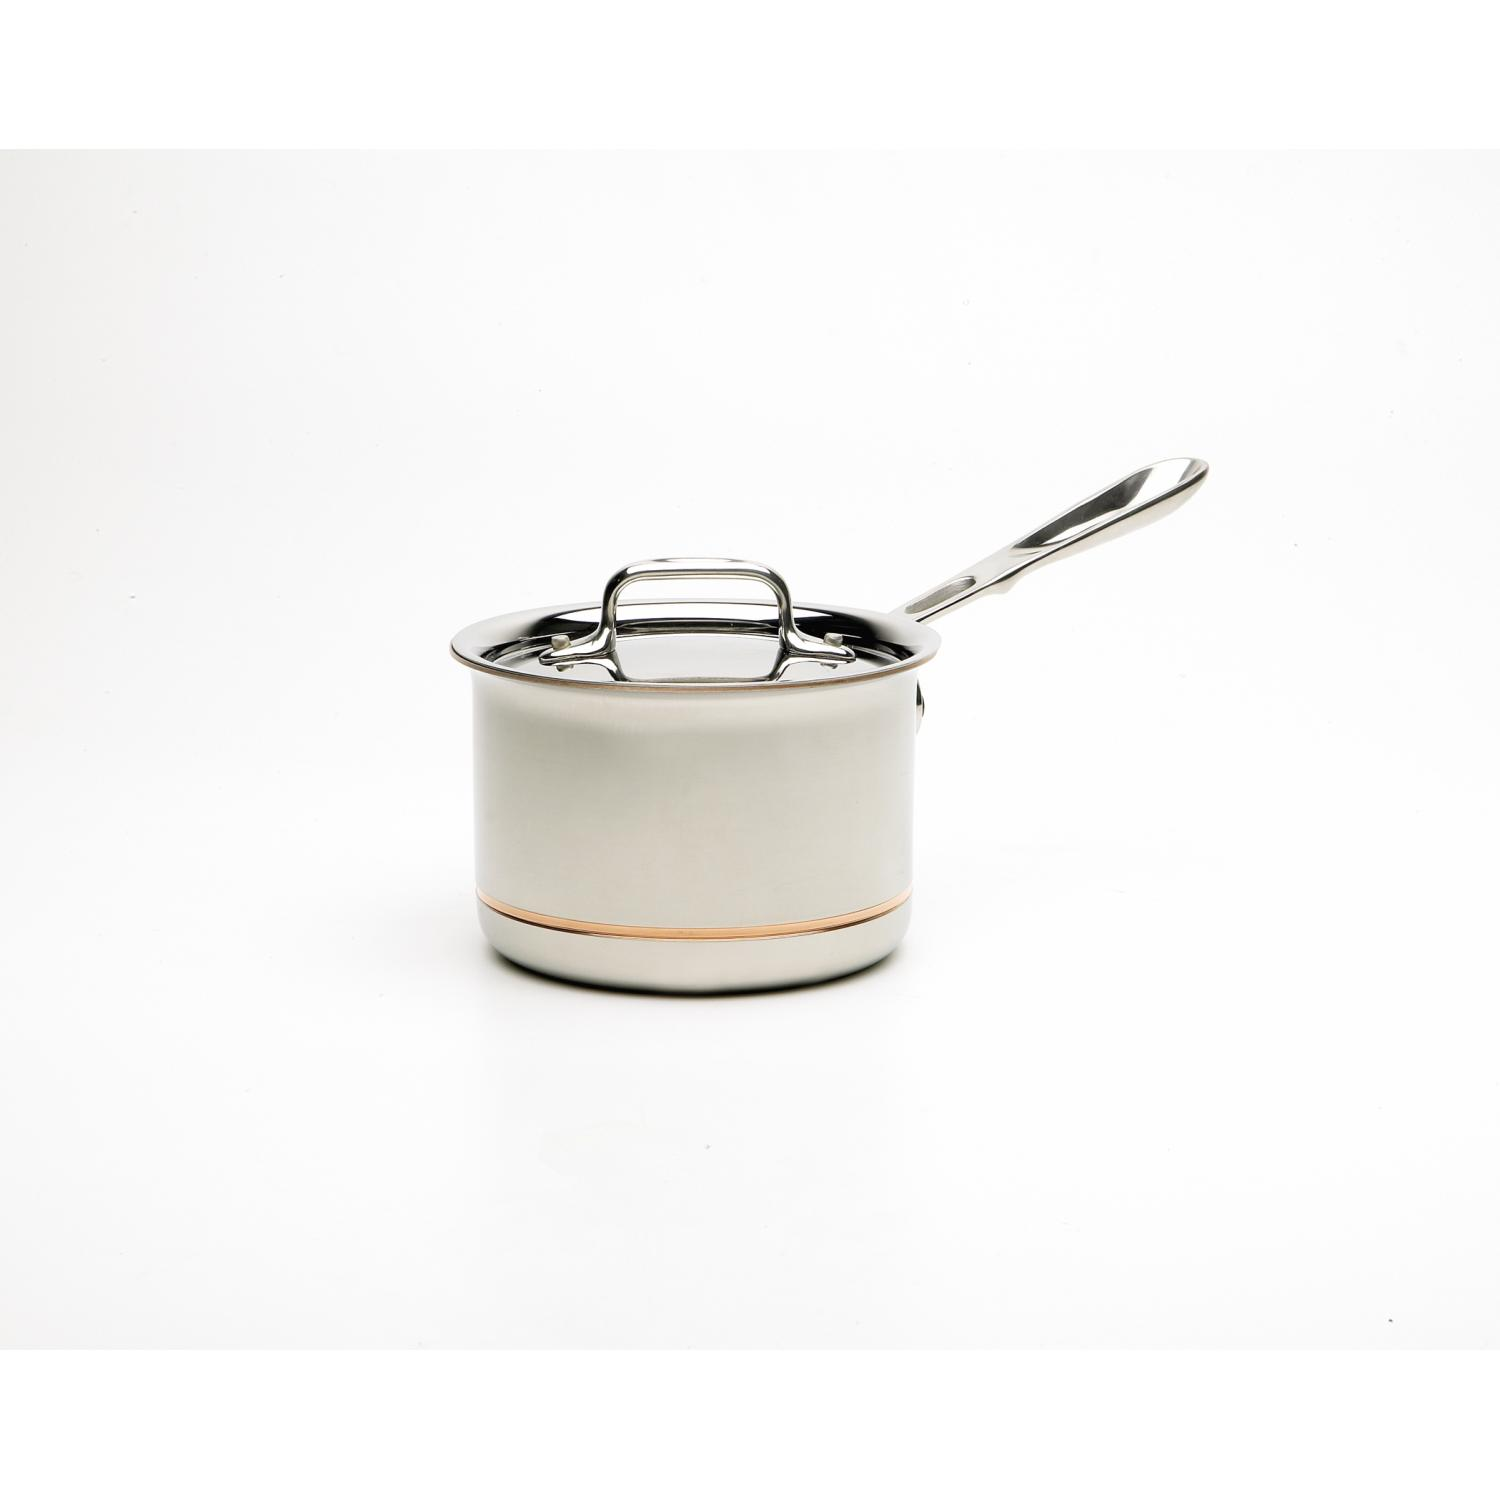 All-Clad Copper-Core 2-Quart Sauce Pan With Lid